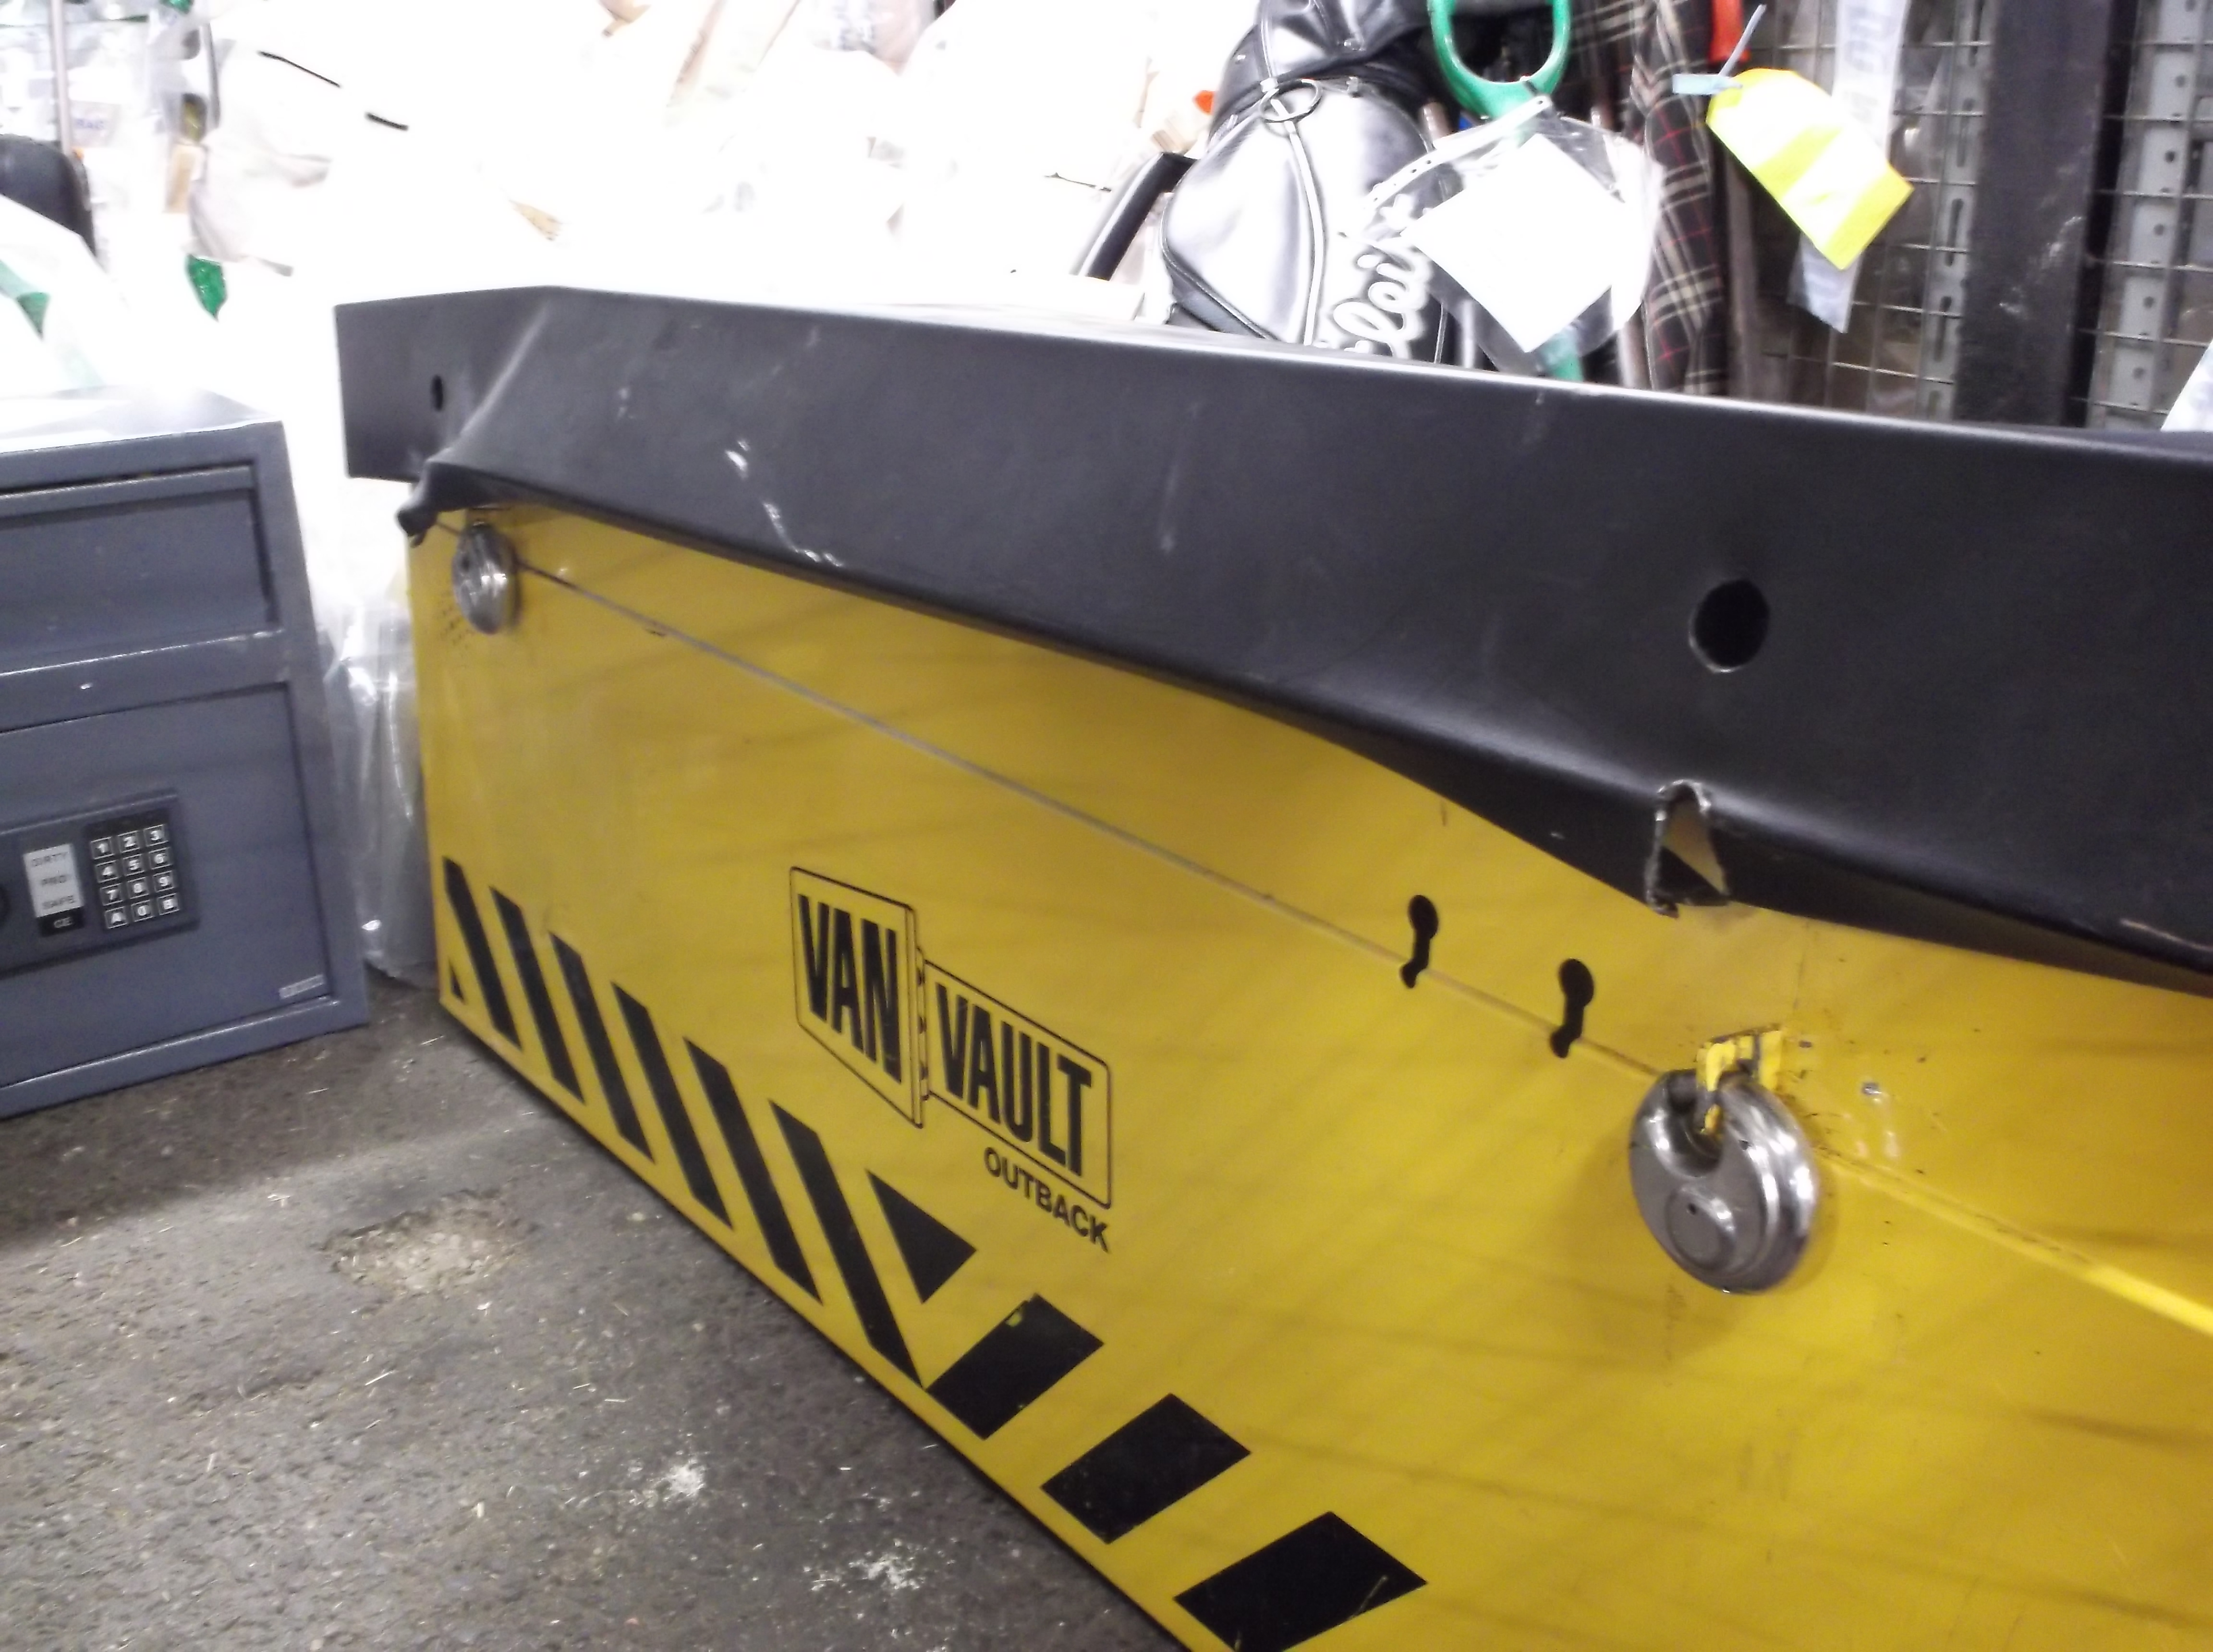 Appeal to trace owner of safe found in stolen vehicle | Runnymede ...